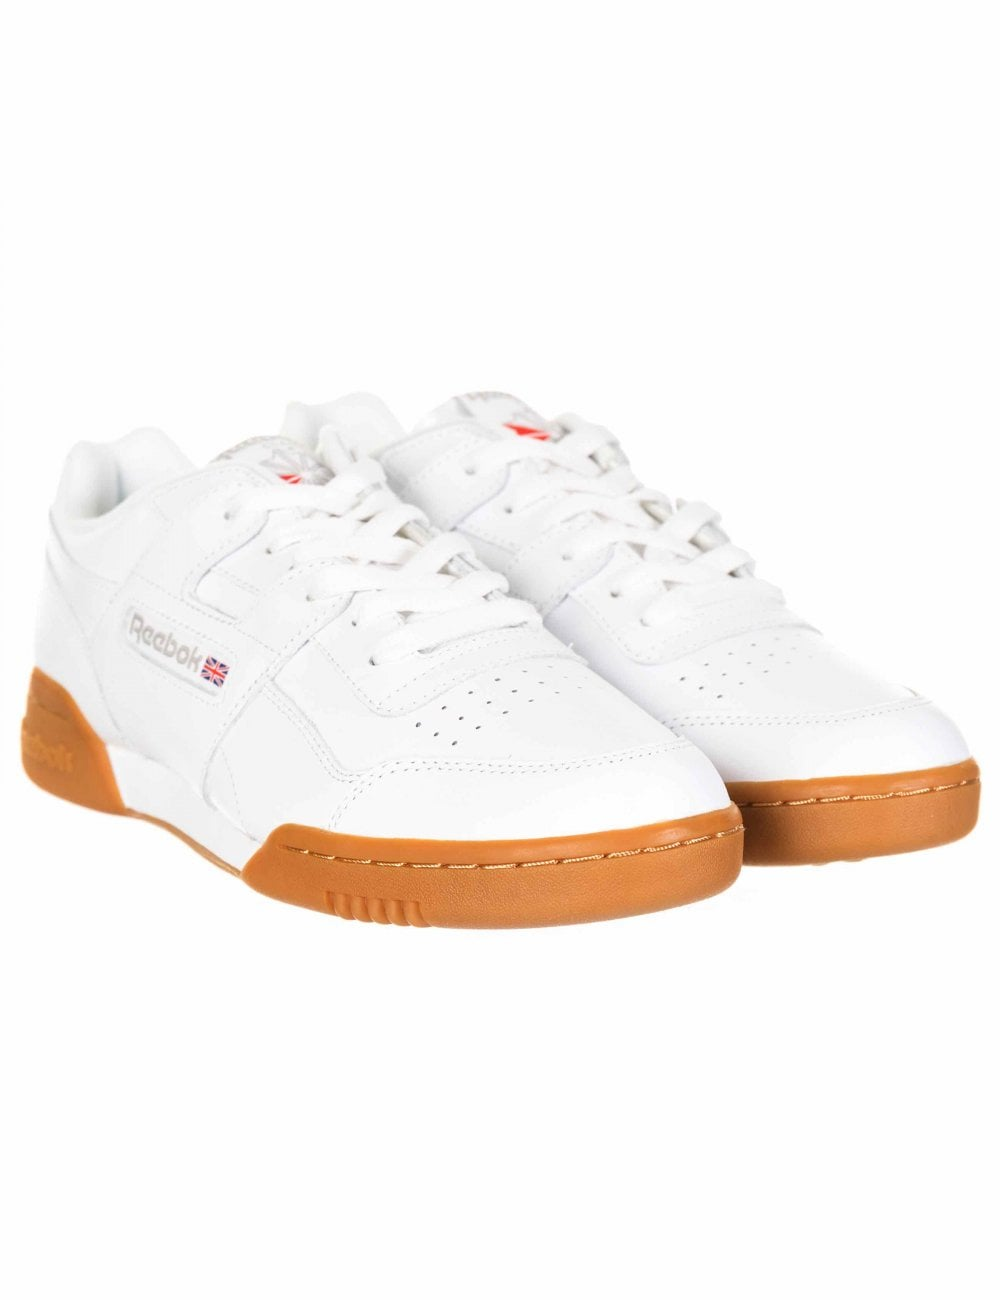 72d912f524411 Reebok Workout Plus Trainers - White Carbon Red - Footwear from Fat Buddha  Store UK